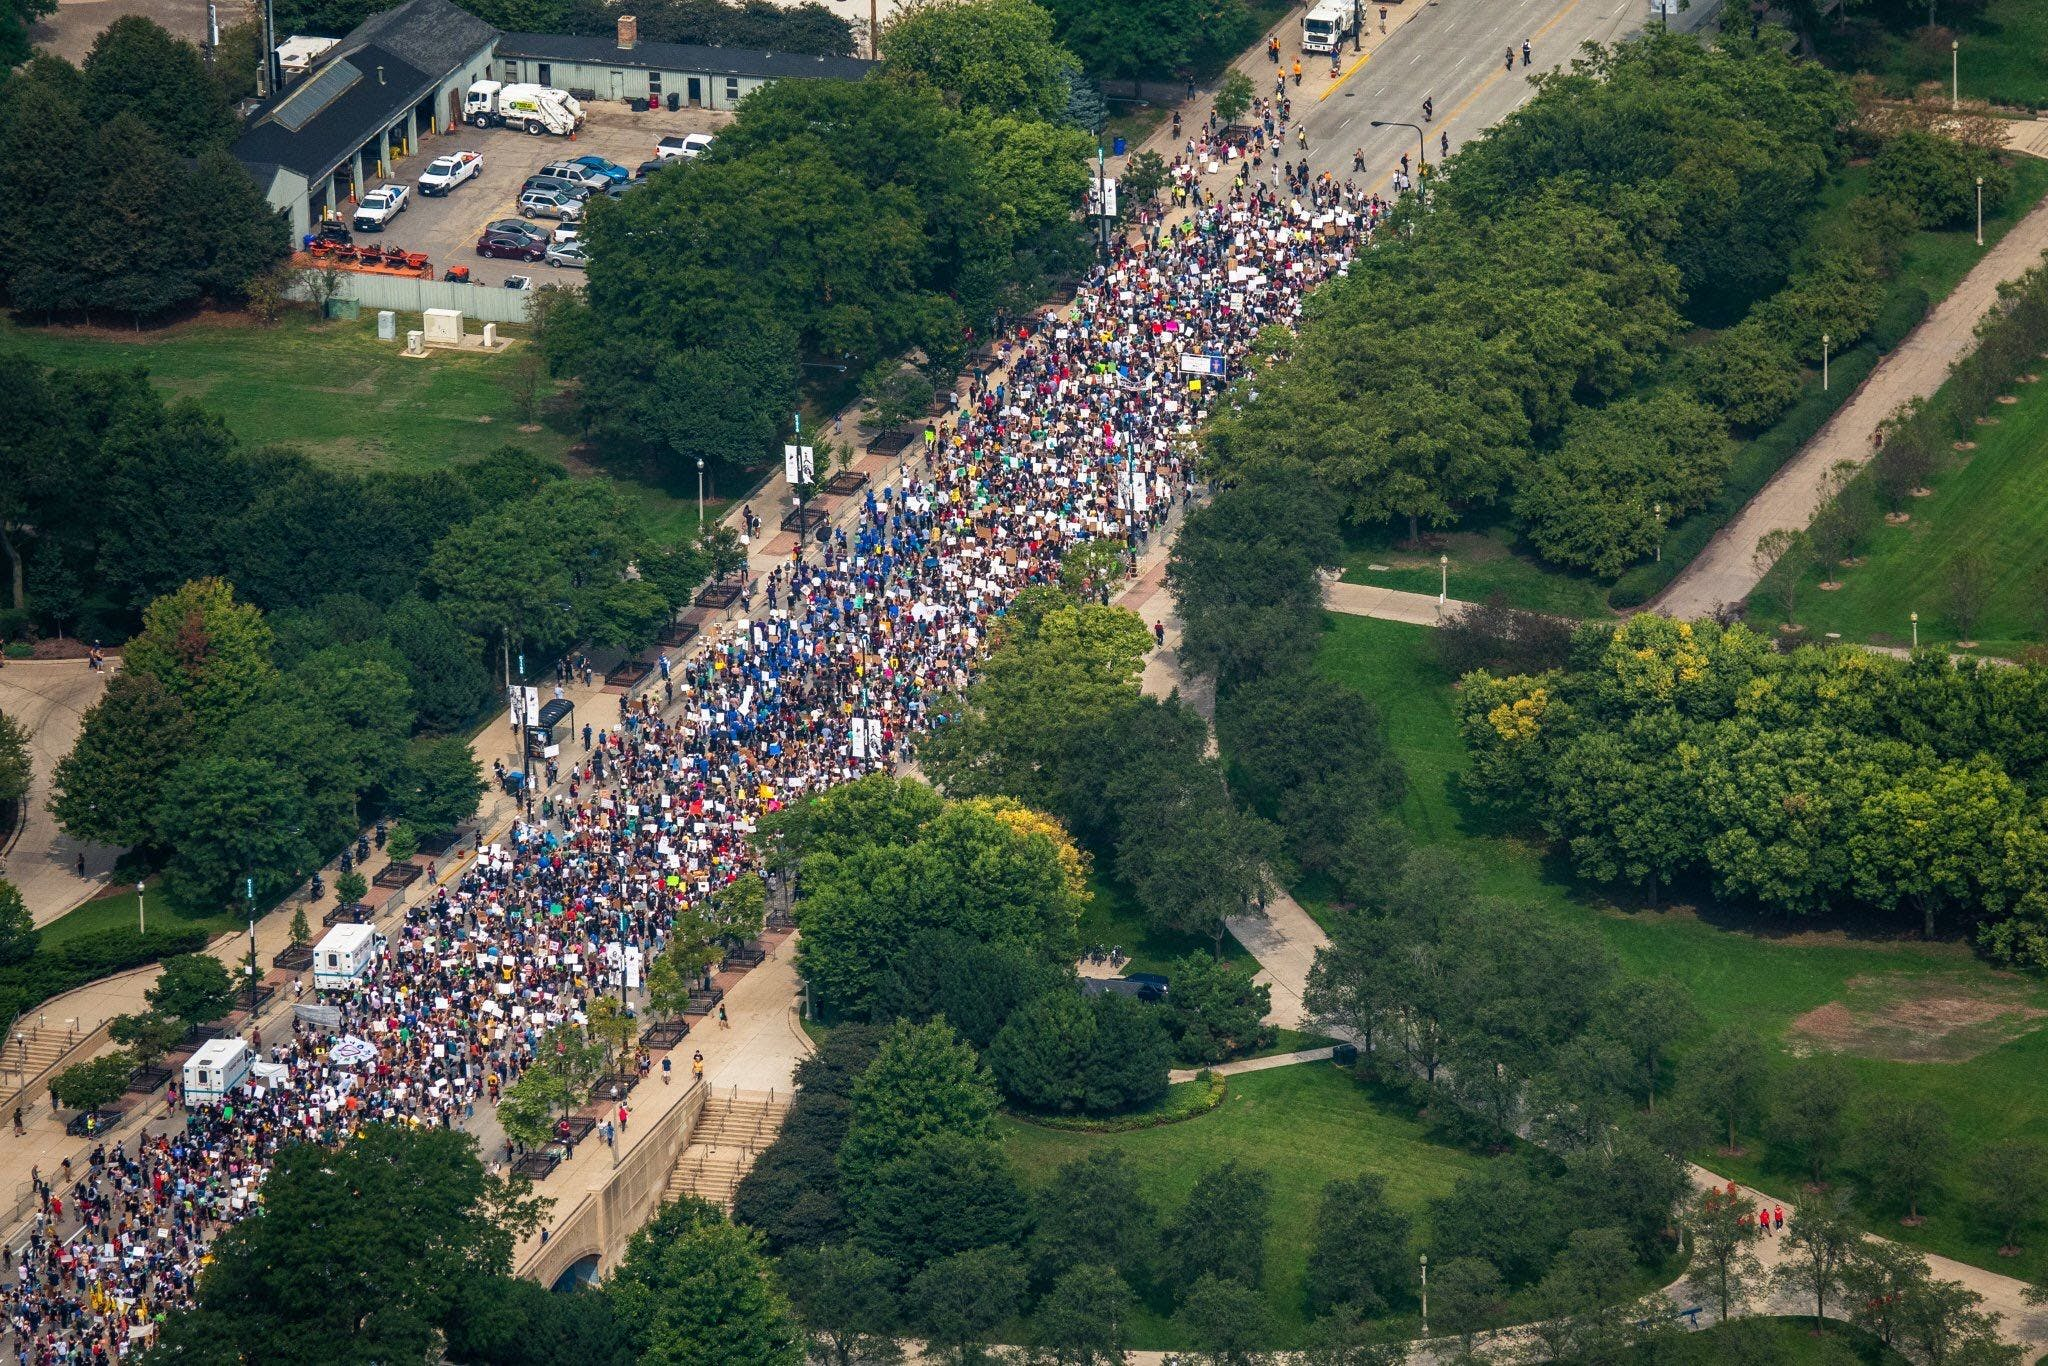 An aerial shot of a crowd of climate strikers marching down the street in Chicago, IL, USA.